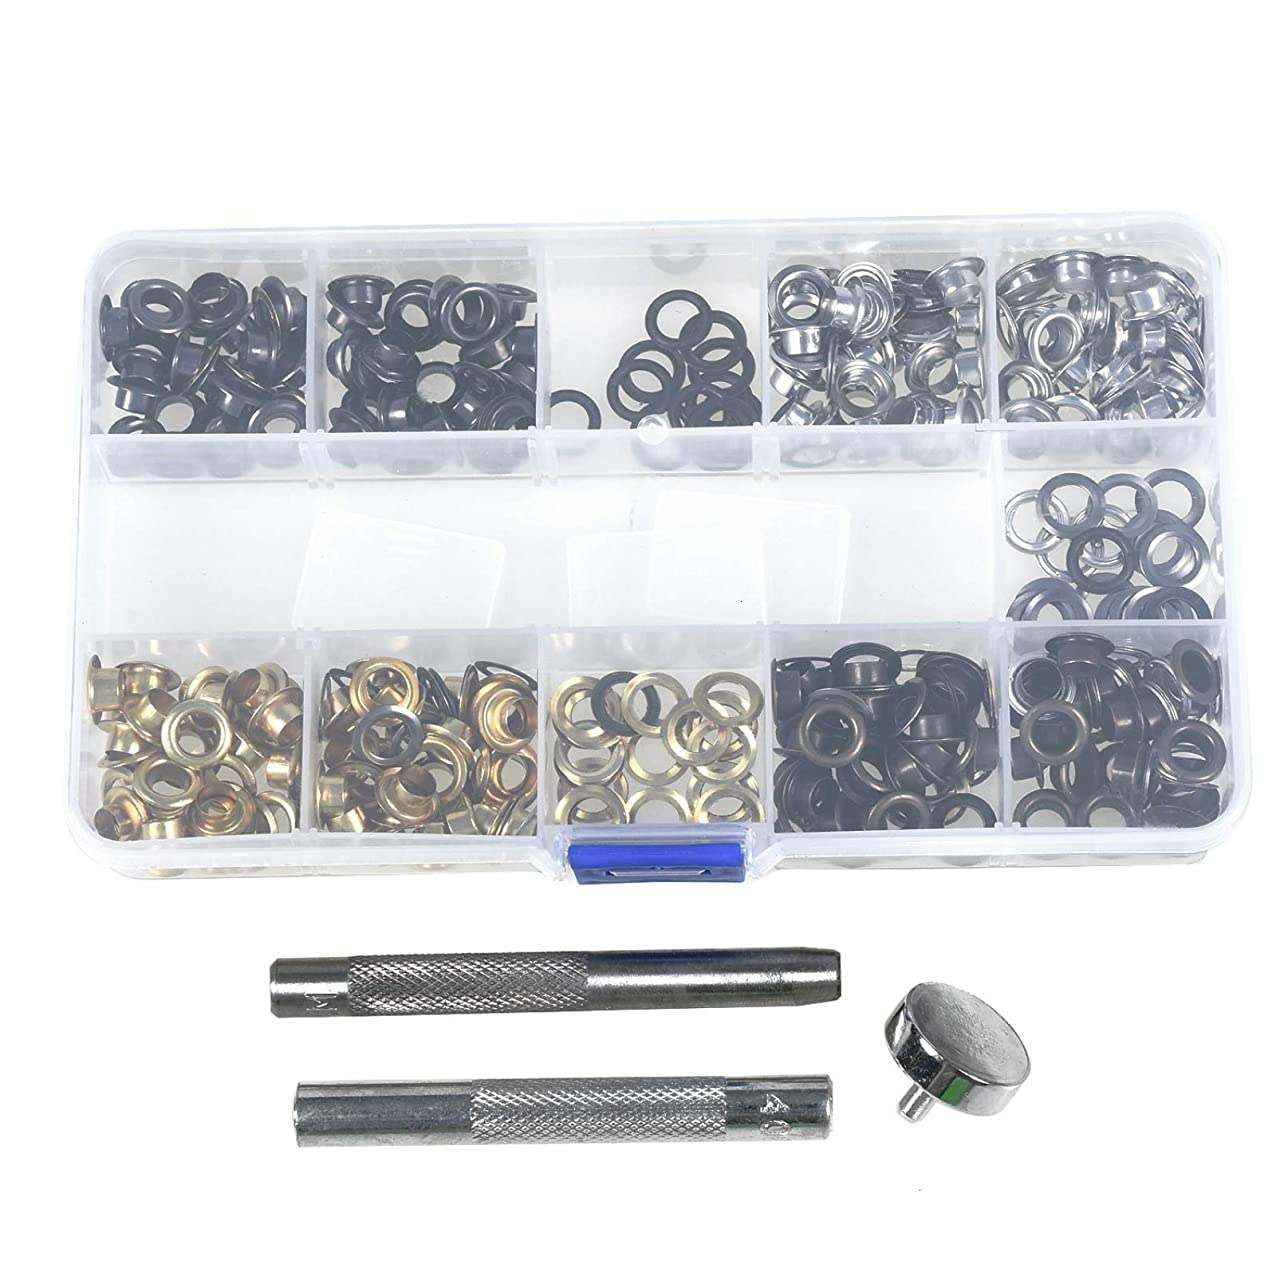 Timoo 1/4 Inch Grommet Kit, 200 Sets Grommets Eyelets and 3 Piece Installation Tools for Making Leather Craft blksbpwsqmvel603